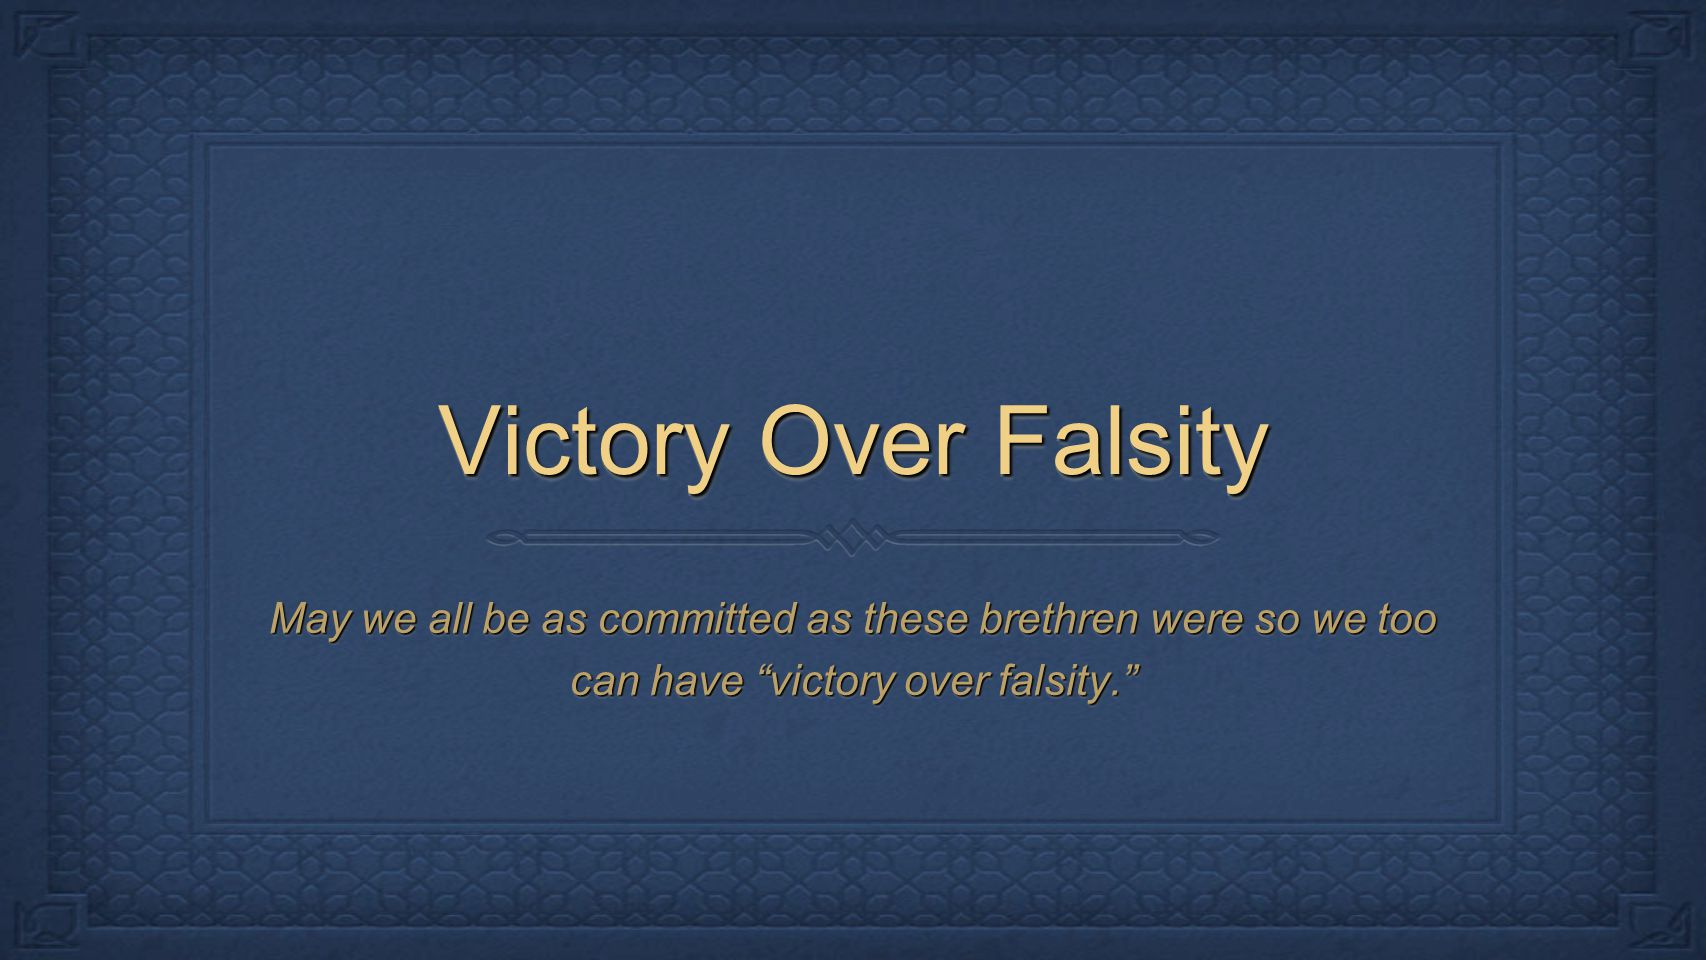 Victory Over Falsity May we all be as committed as these brethren were so we too can have victory over falsity.